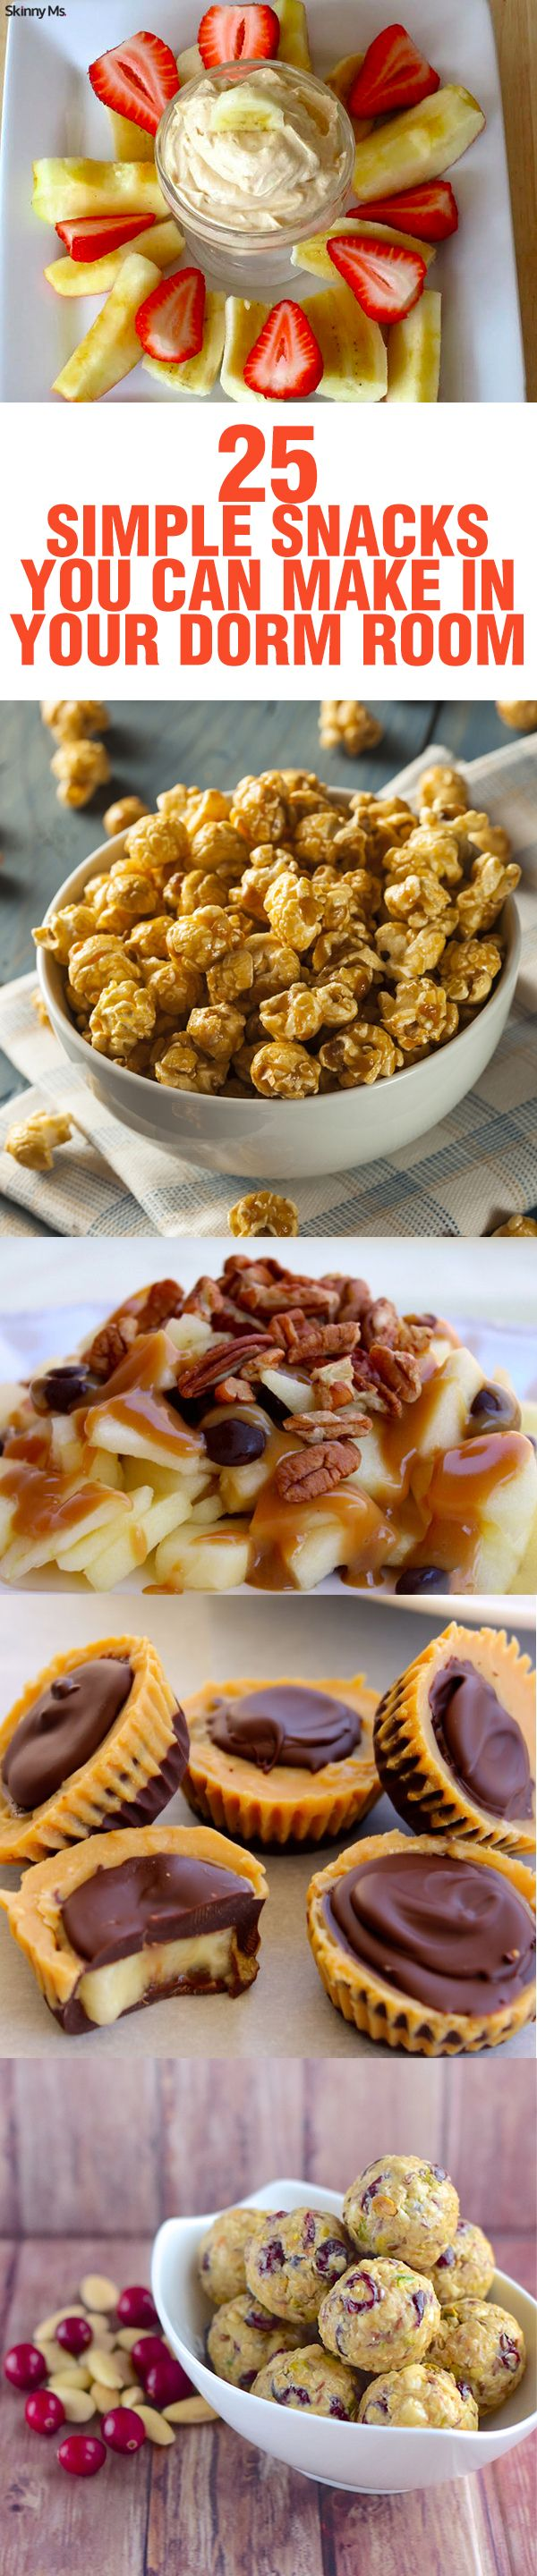 25 Simple Snacks You Can Make in Your Dorm Room @skinnyms